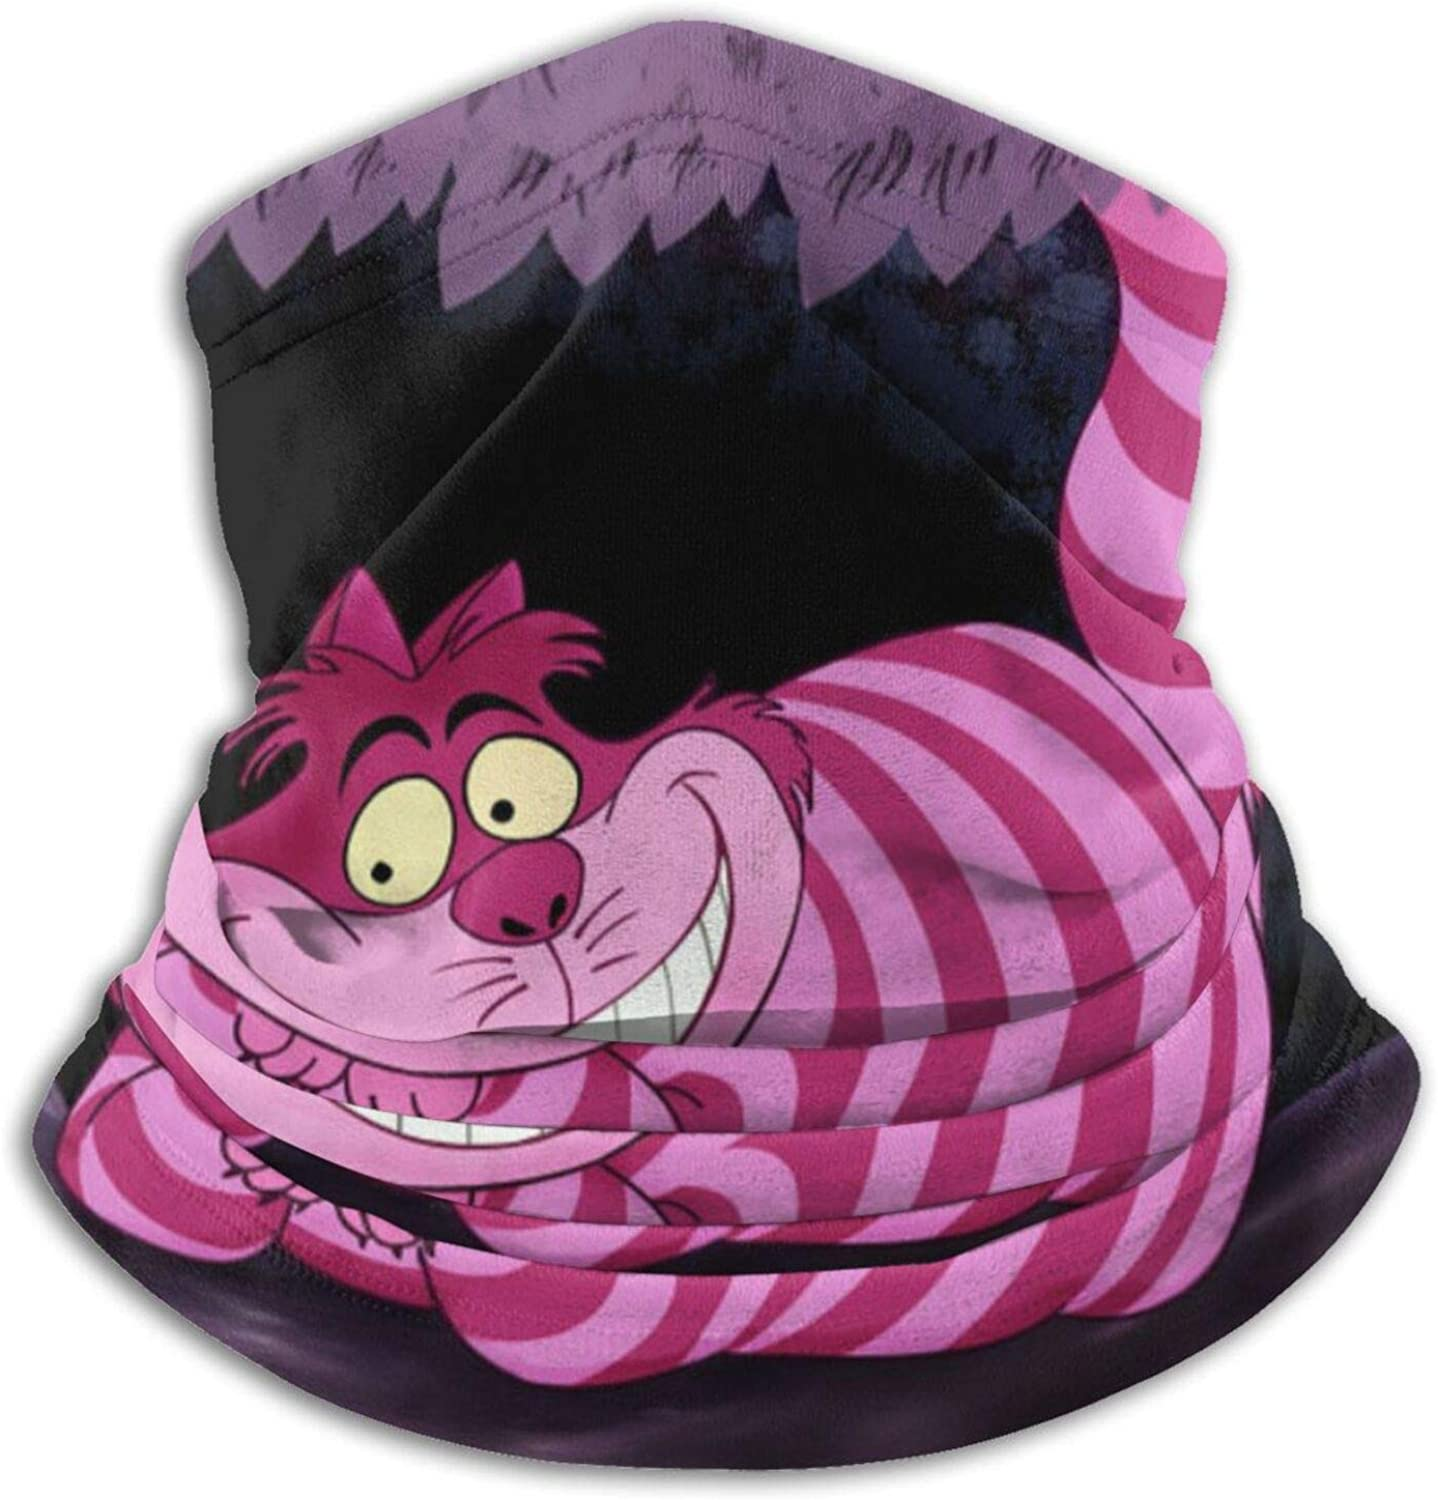 ZVEZVI Biker Snood Face Cover for Men and Women Outdoor Sports//Motor//Cycling ,Alice in Wonderland Cheshire Cat Adult Neck Warmer Bandanas Washable and Reusable Comfortable